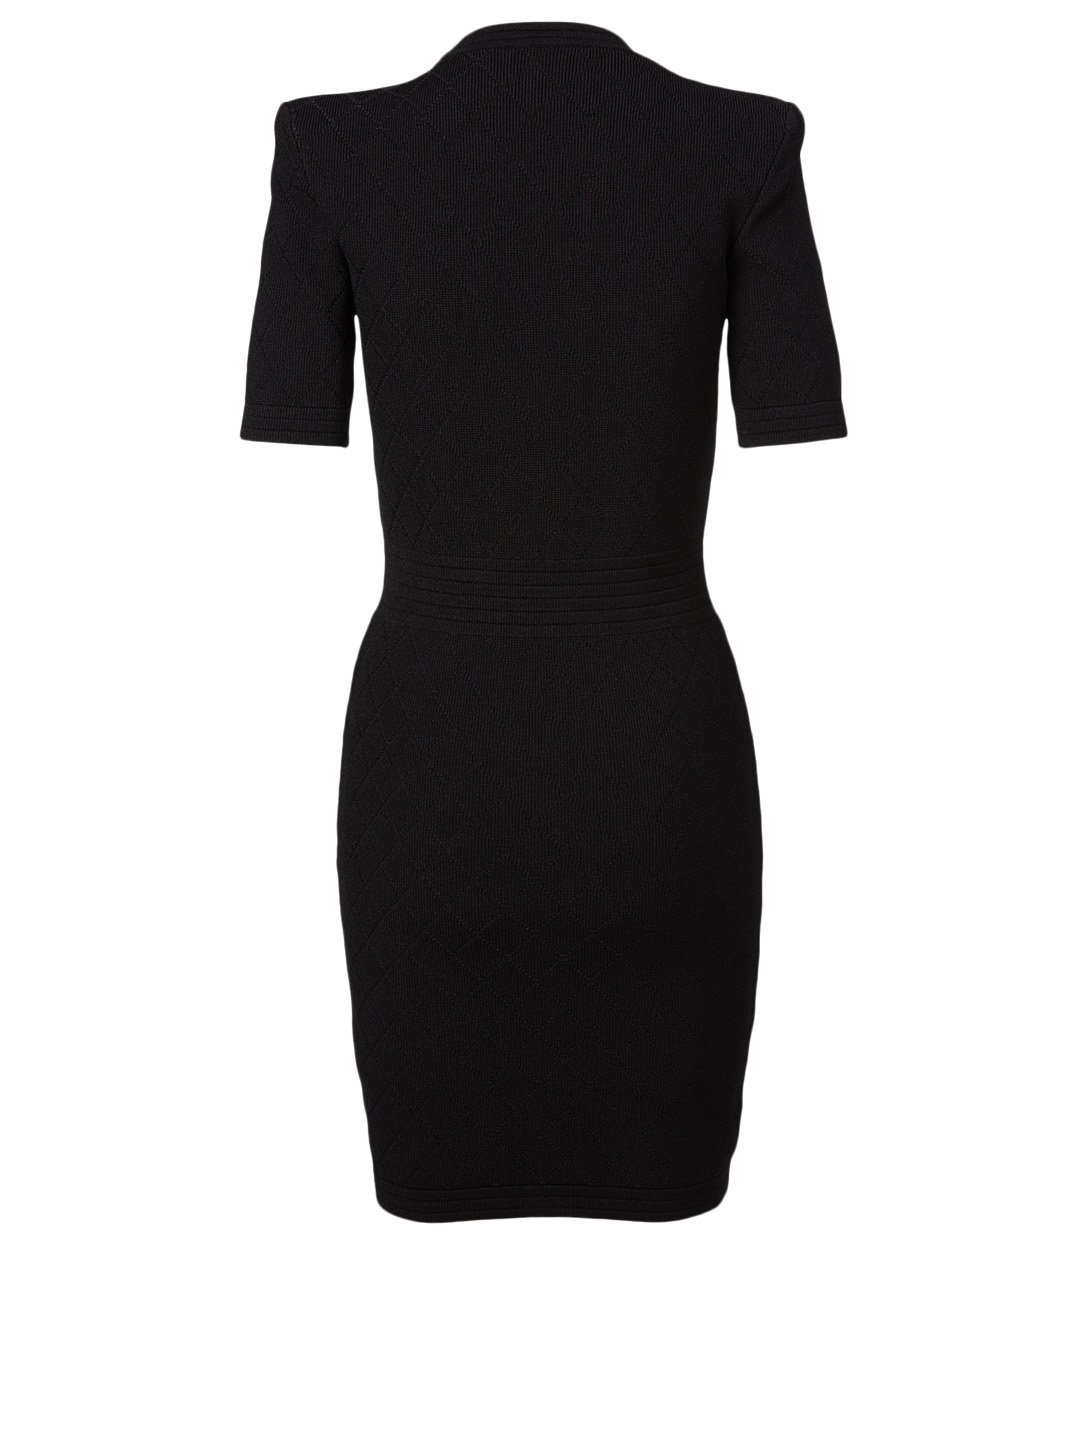 BALMAIN V-Neck Diamond Knit Mini Dress Women's Black